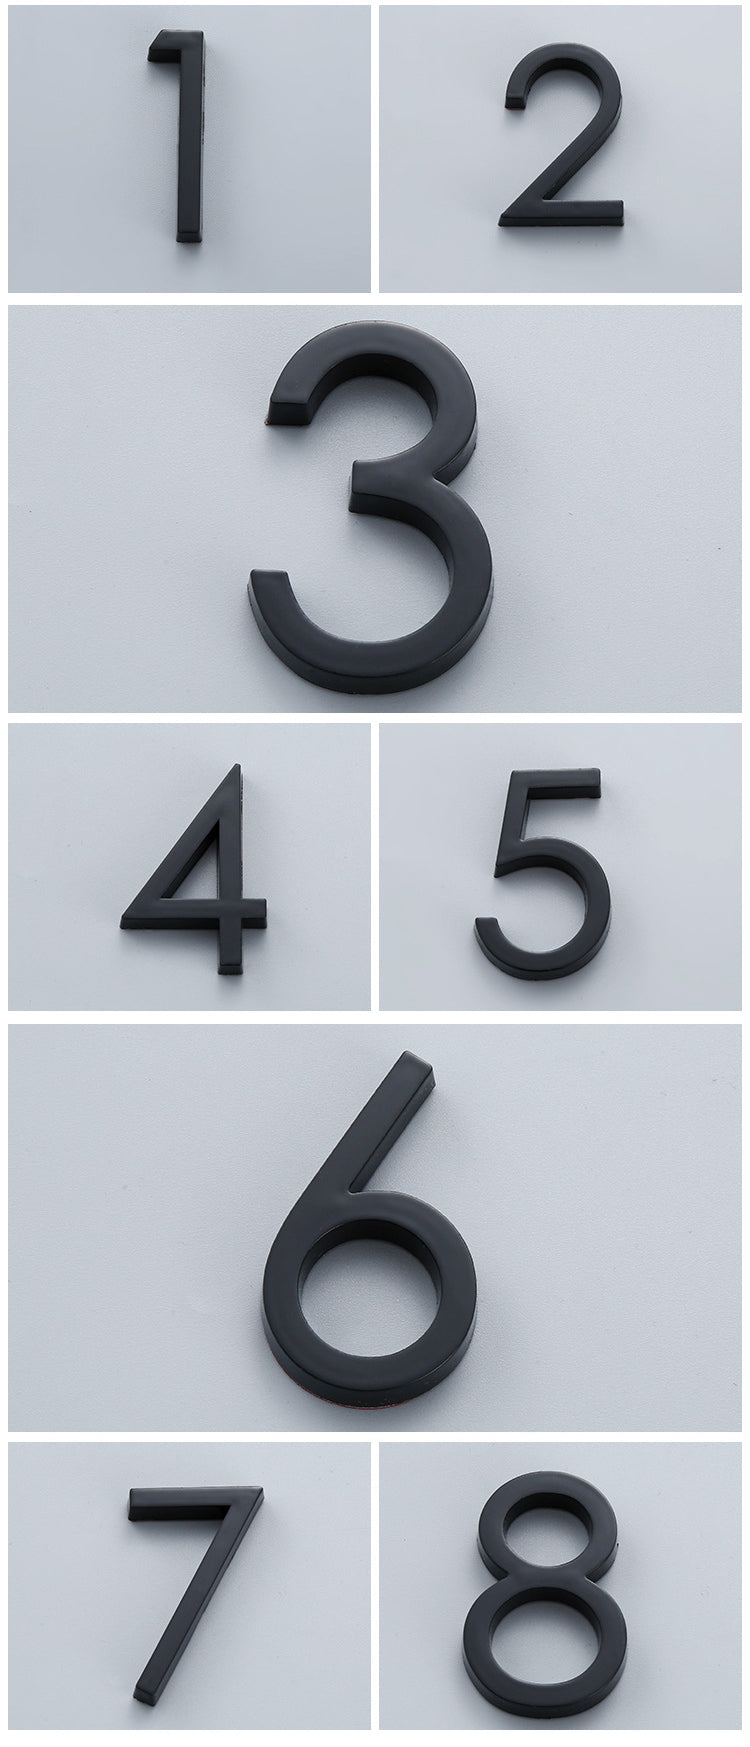 Bright Modern 3D Door Numbers For Hotel Rooms Residential Business Office Signage Self Adhesive Numbers Electroplated Plastic Digits #0-9